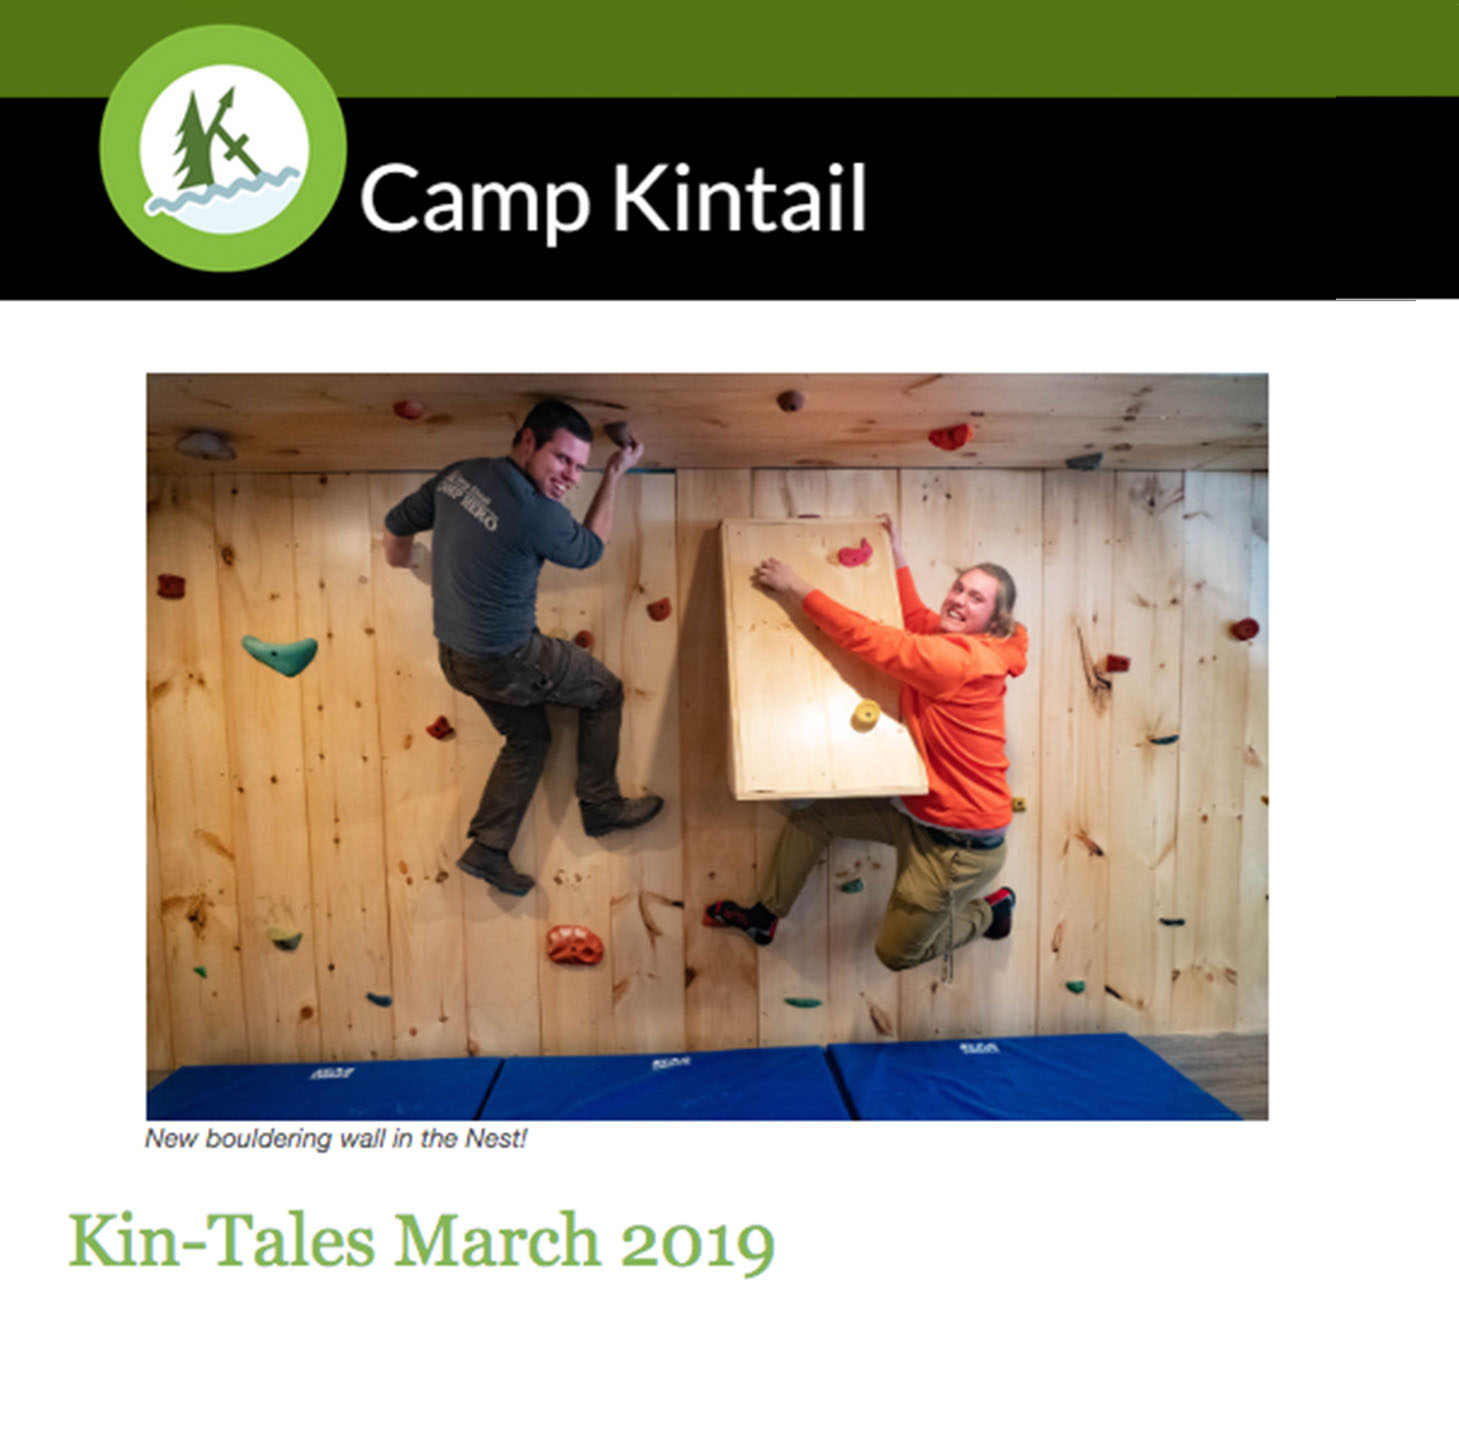 Title text: Kin-Tales March 2019. Image: Staff climbing in bouldering room.